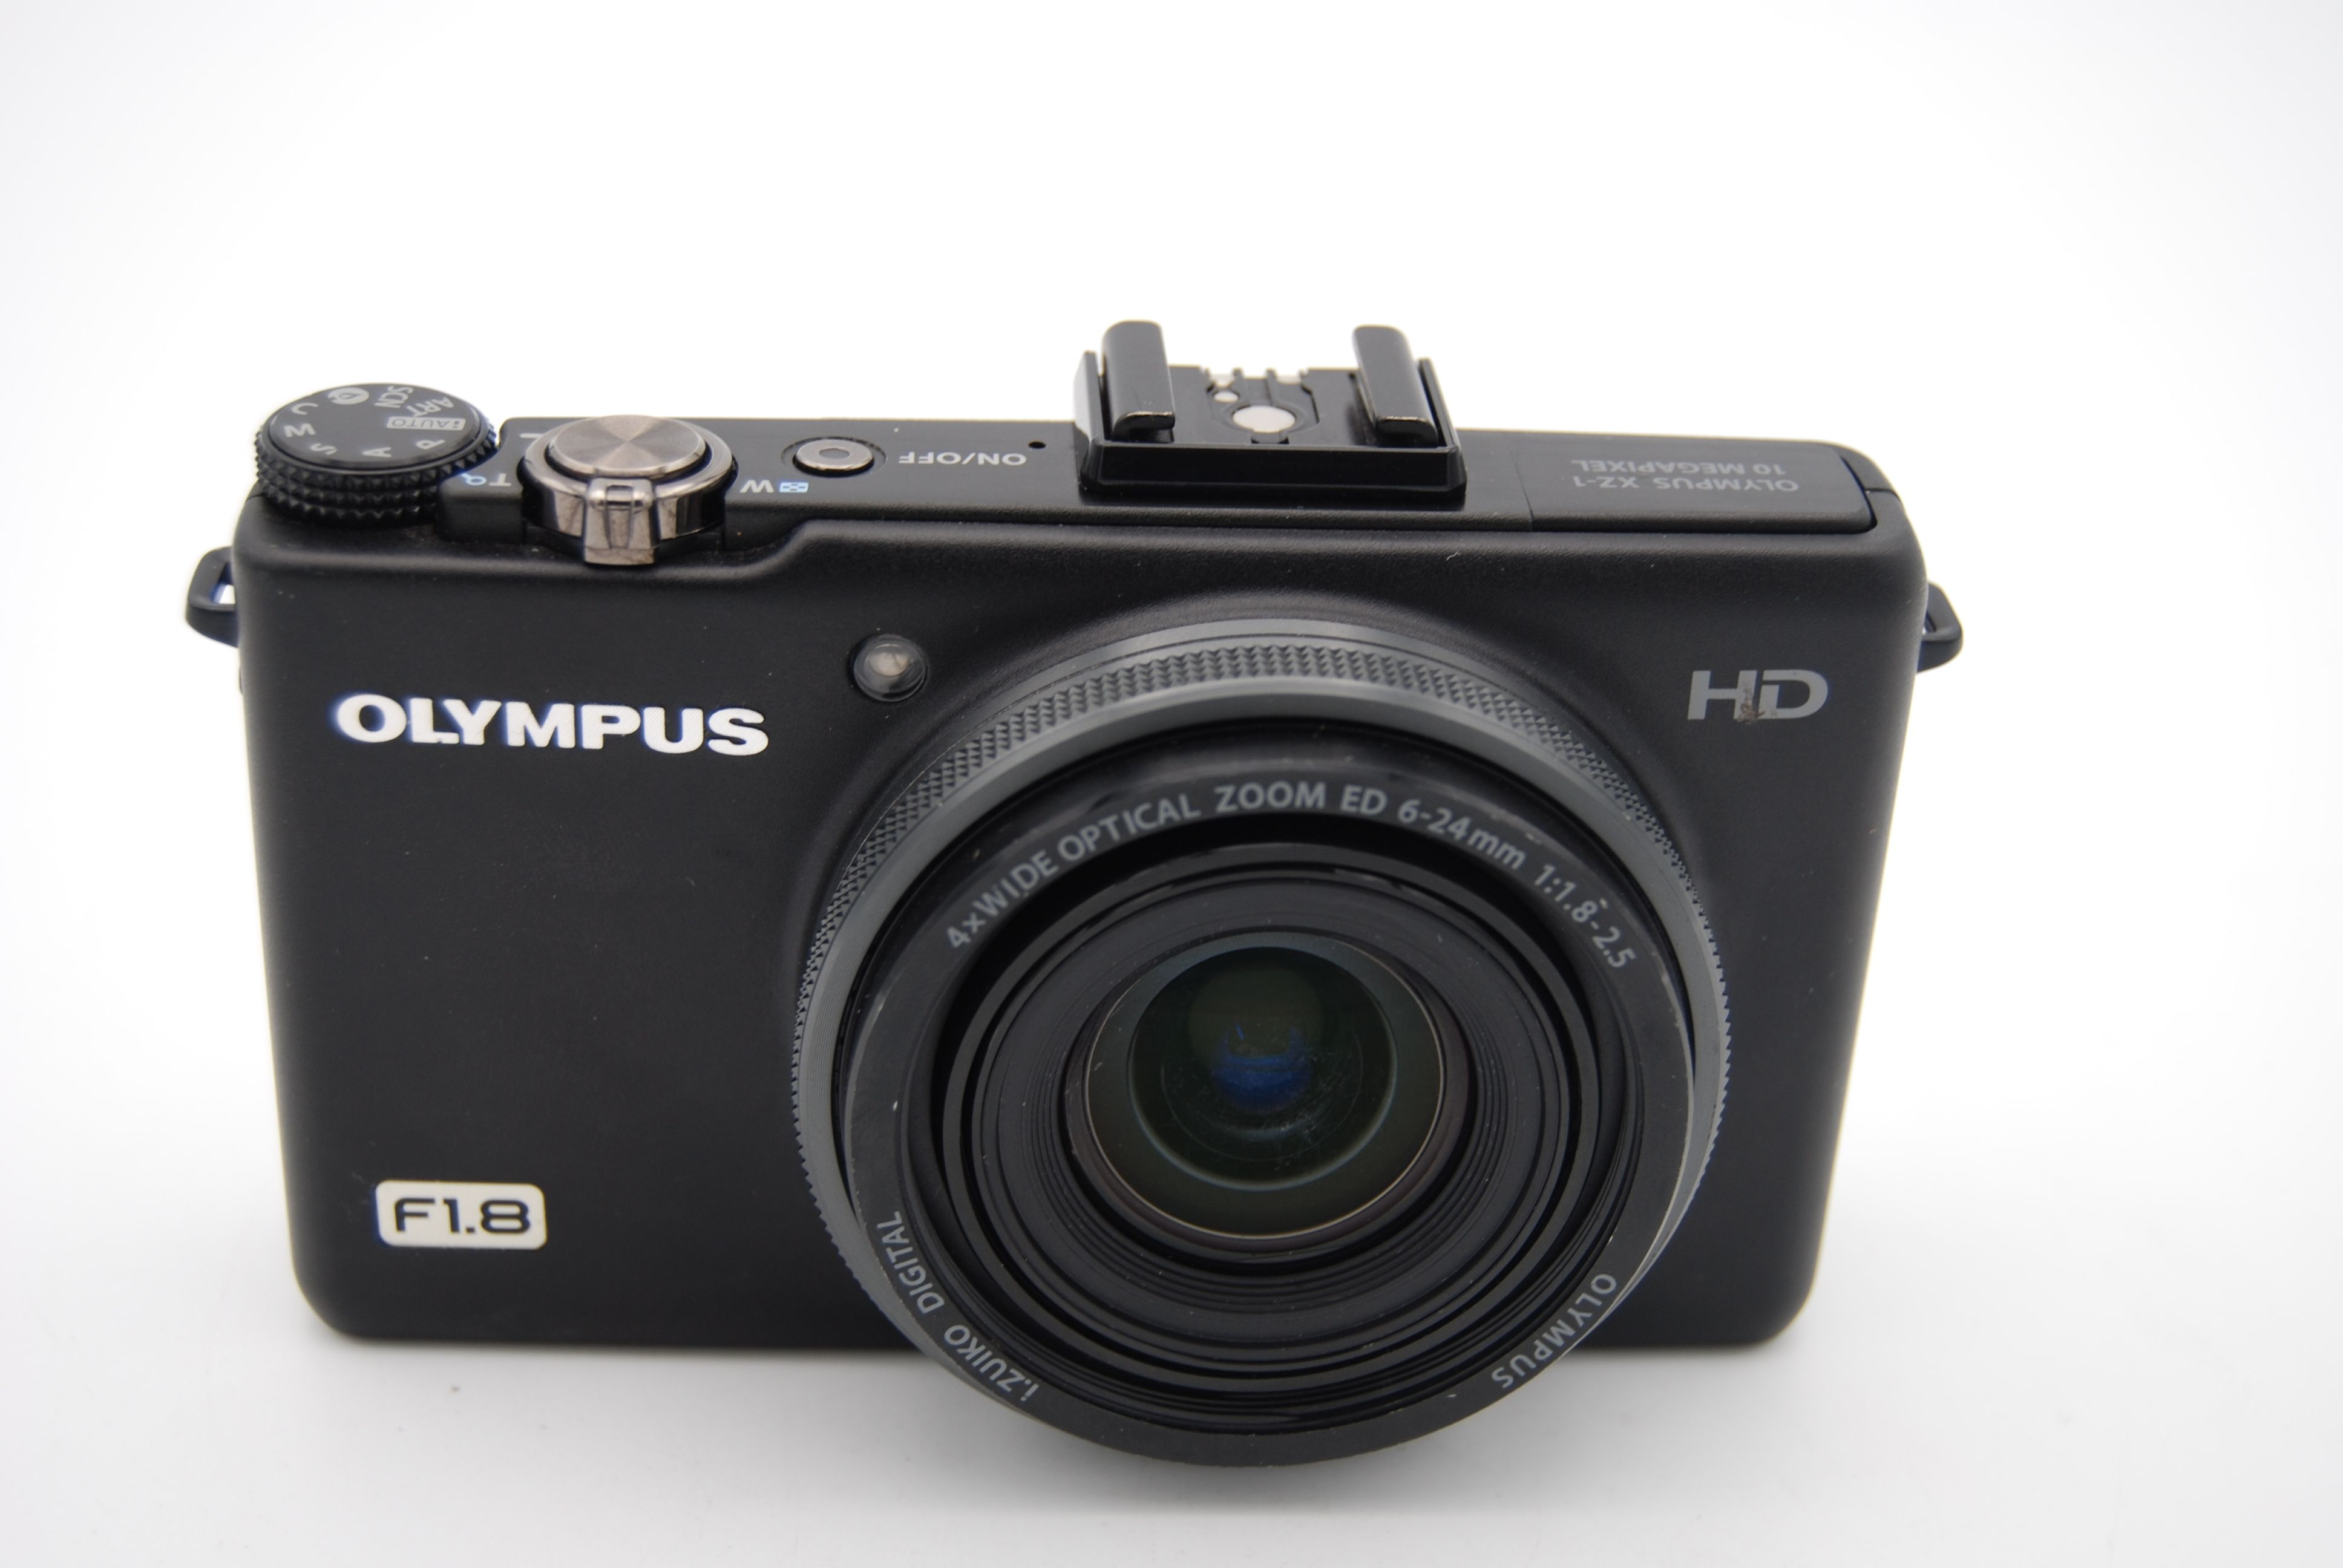 olympus stylus xz 1 10mp digital camera black 50332175853 ebay rh ebay com Olympus Stylus Manual PDF Olympus Stylus Manual PDF